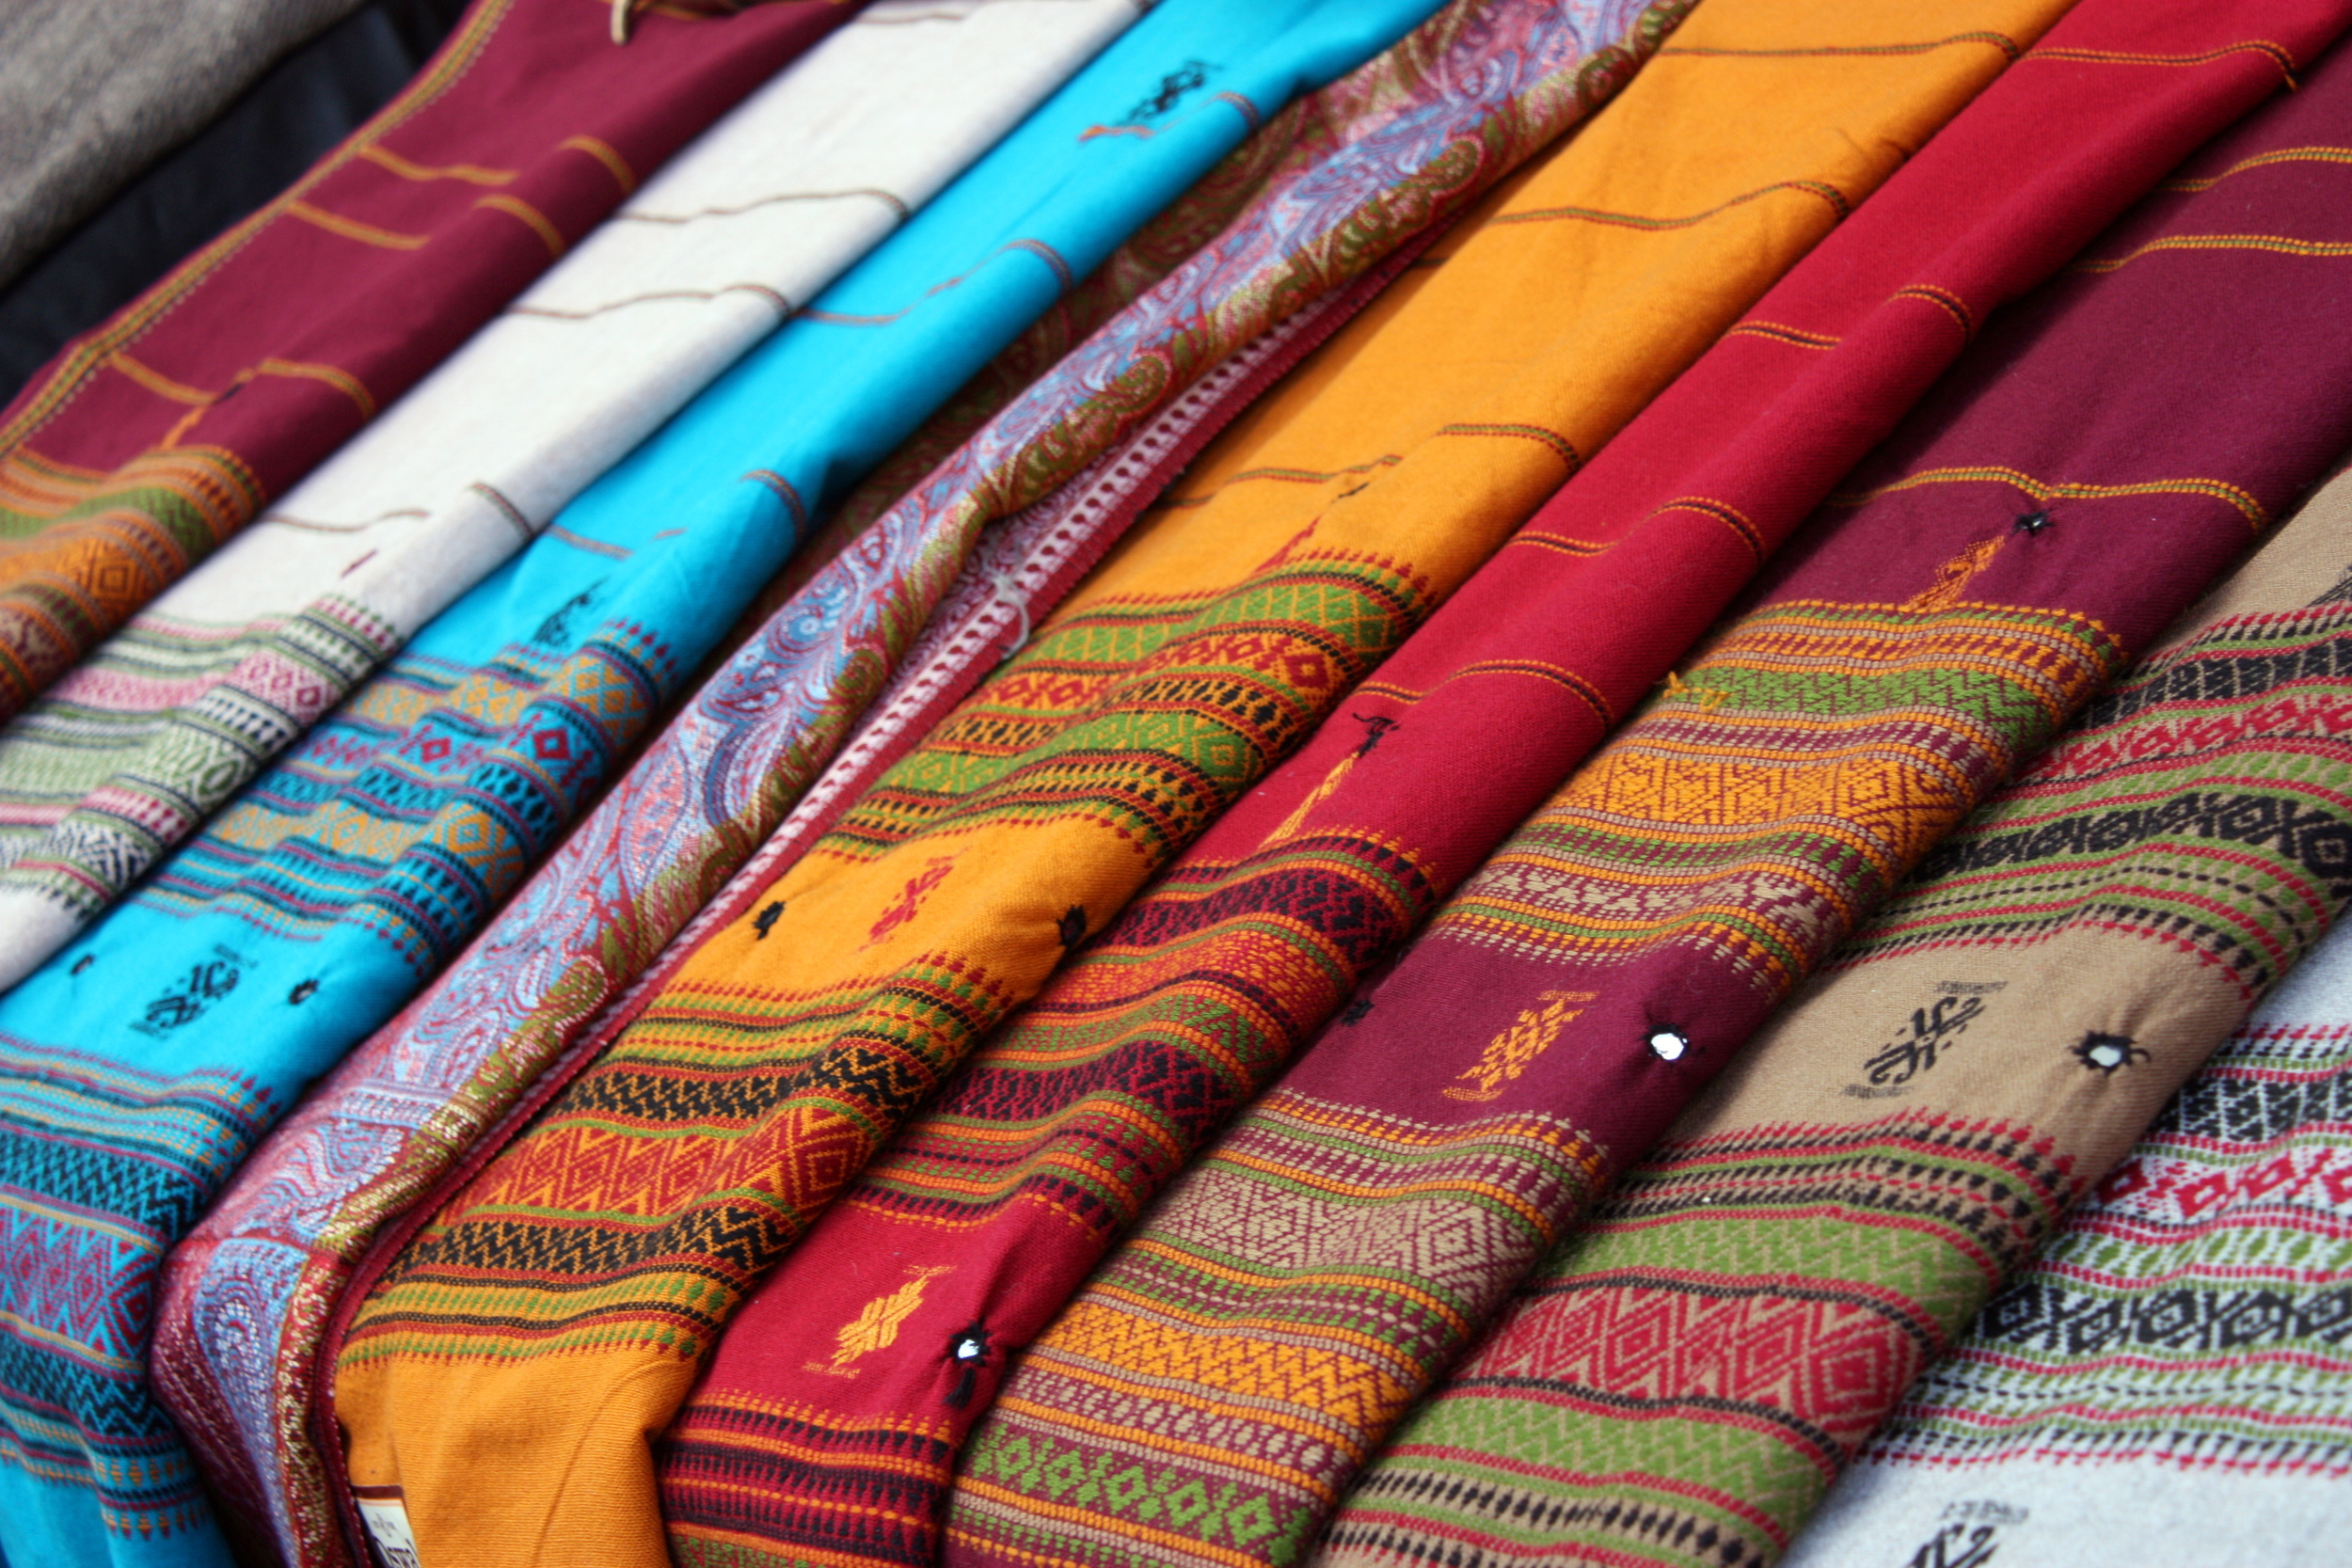 textiles for sale in the Laines